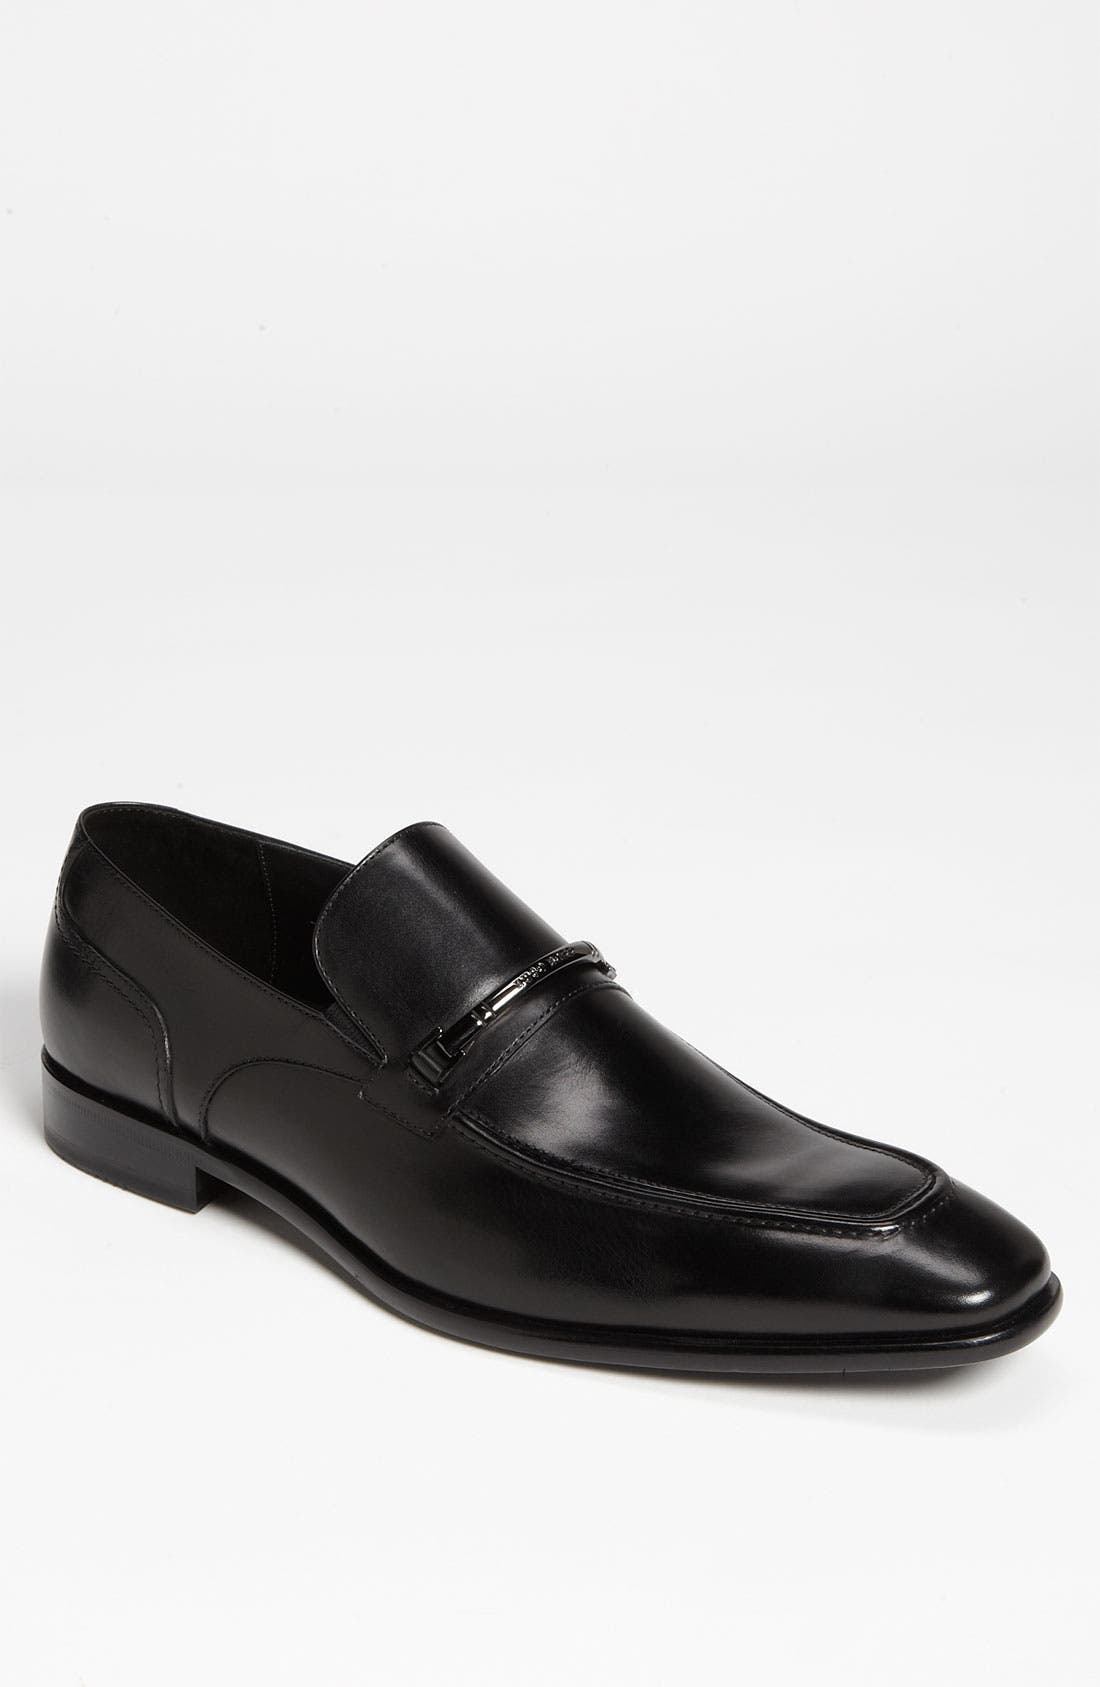 Main Image - BOSS HUGO BOSS 'Metono' Bit Loafer